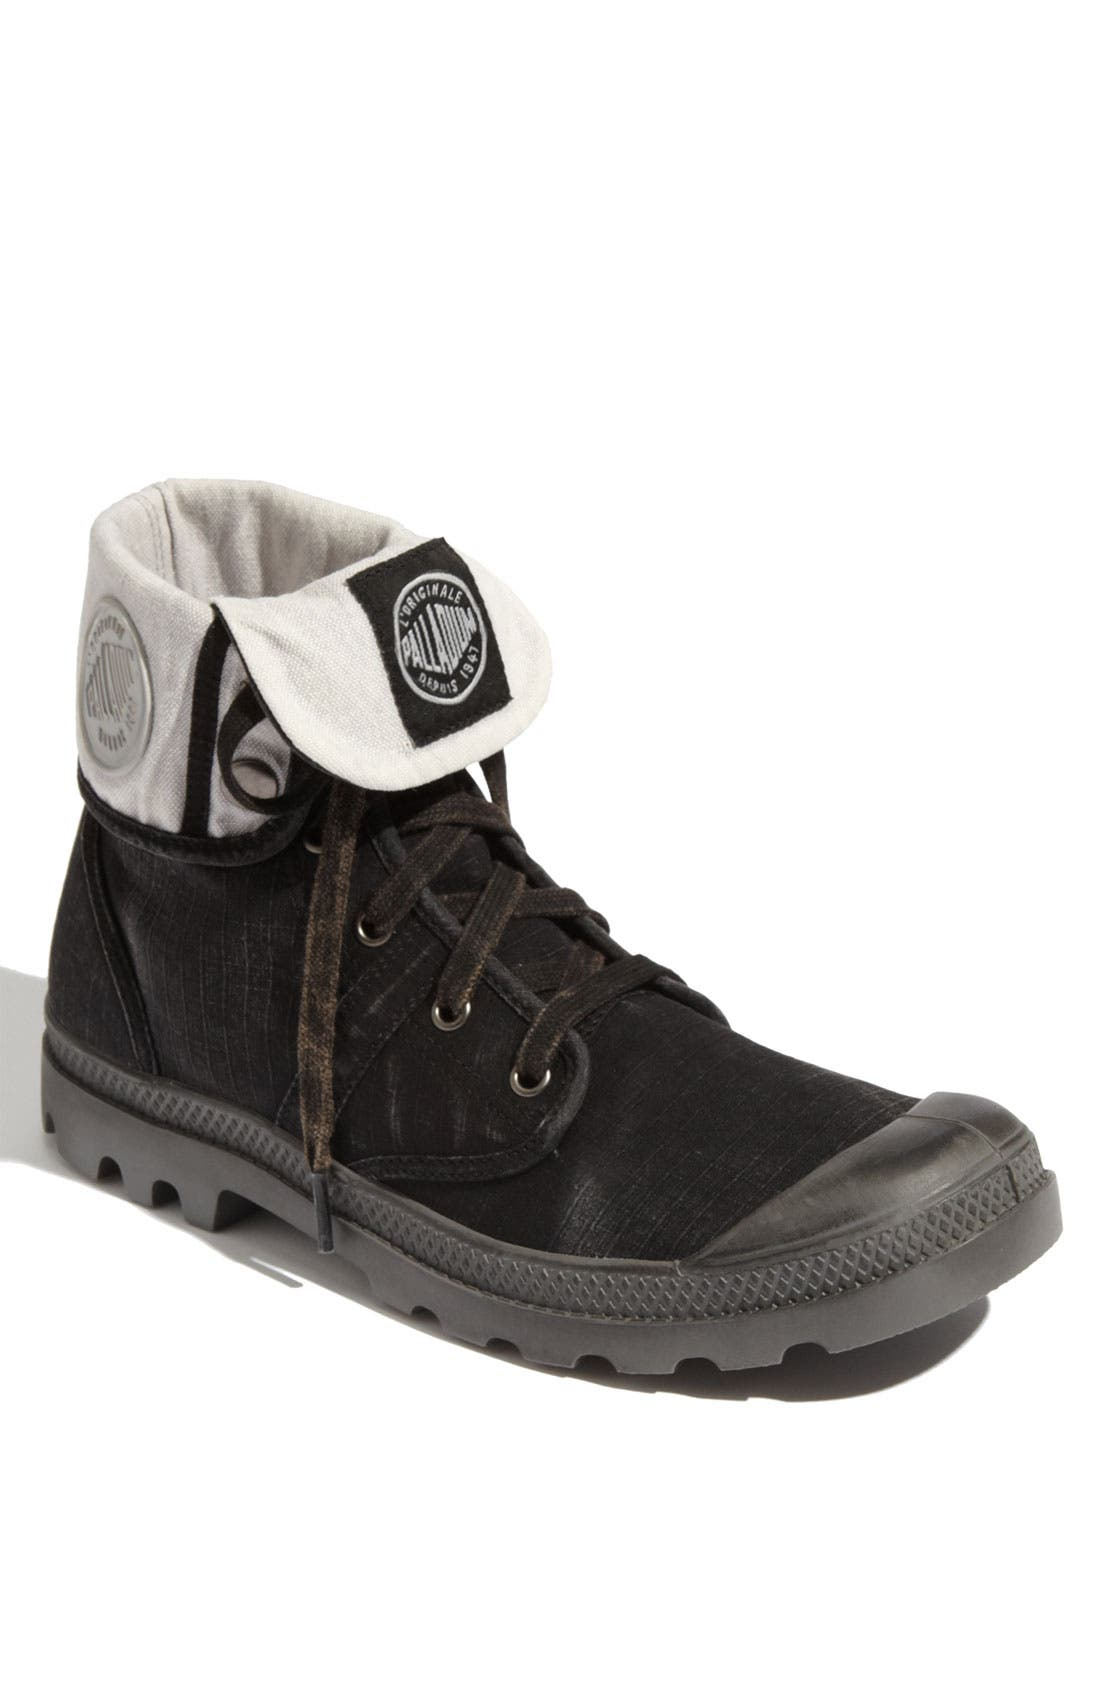 Alternate Image 1 Selected - Palladium 'Baggy' Distressed Boot (Men)